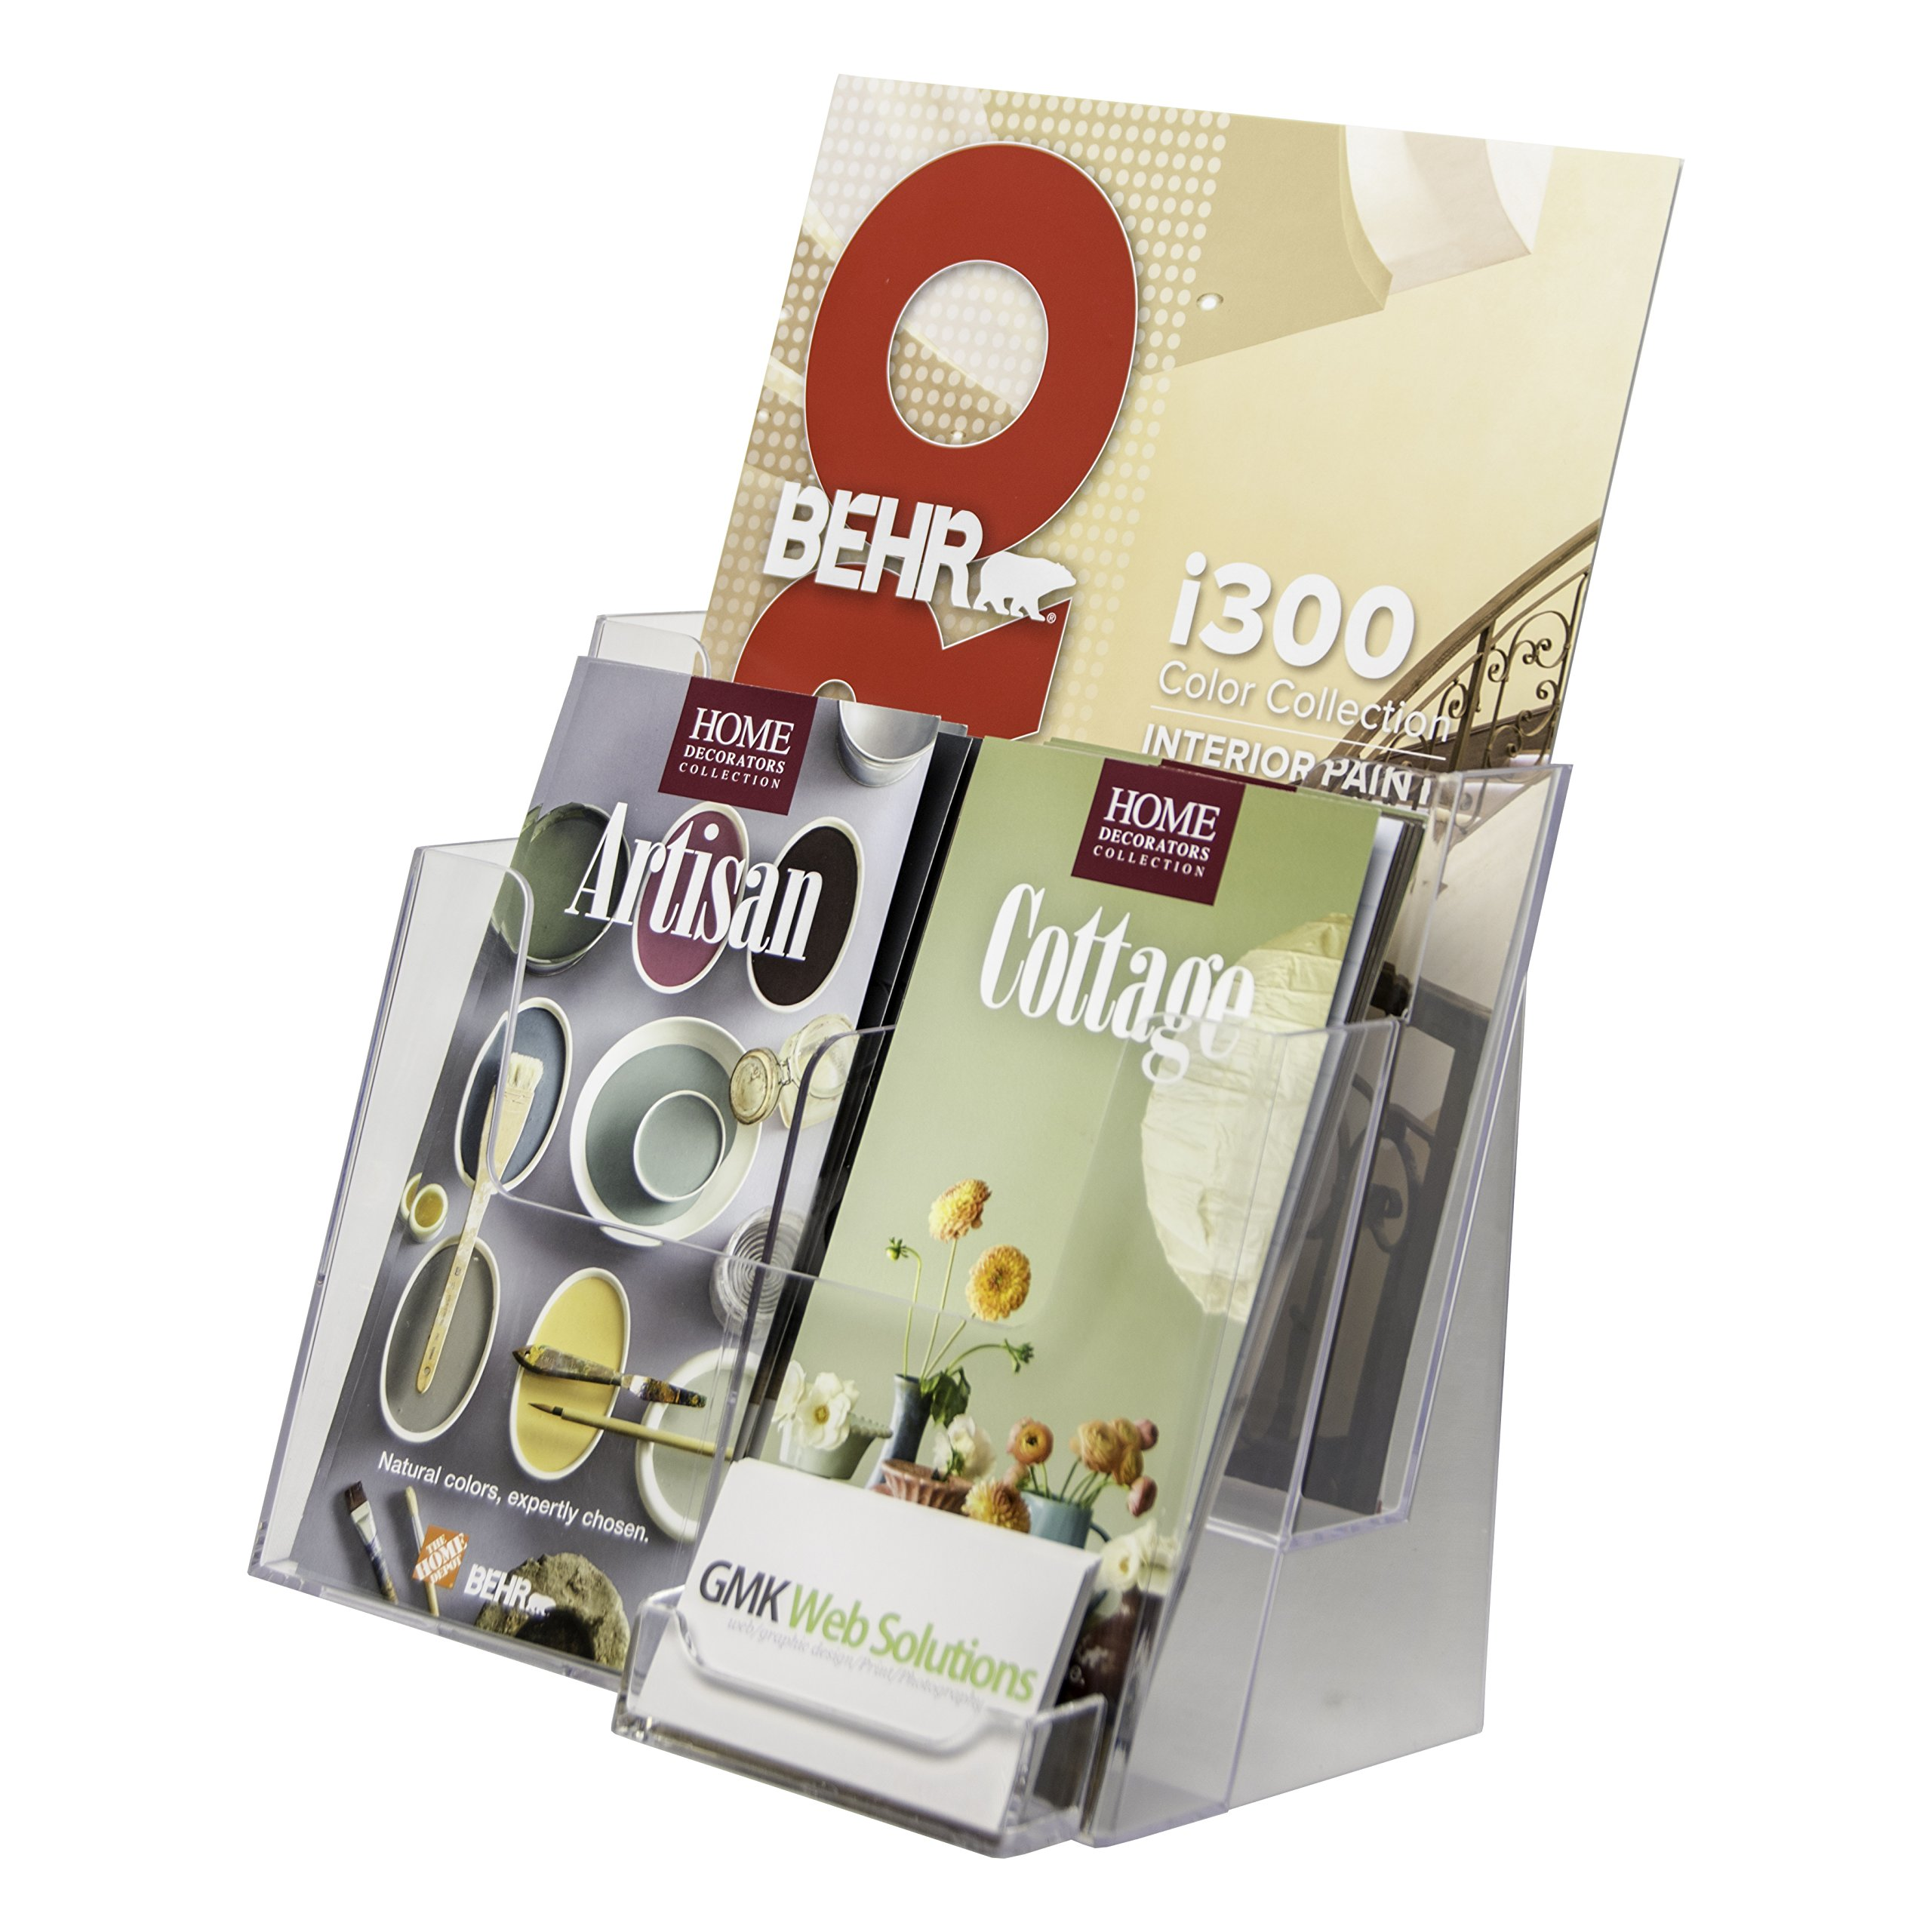 Clear-Ad - LHF-P82 - Acrylic 2 Tier Brochure Holder Organizer 8.5 x 11 with Business Card Pocket - Plastic Stand for Posters, Leaflets, Magazines, Envelopes, Flyers, Pamphlets, Booklets (Pack of 1)